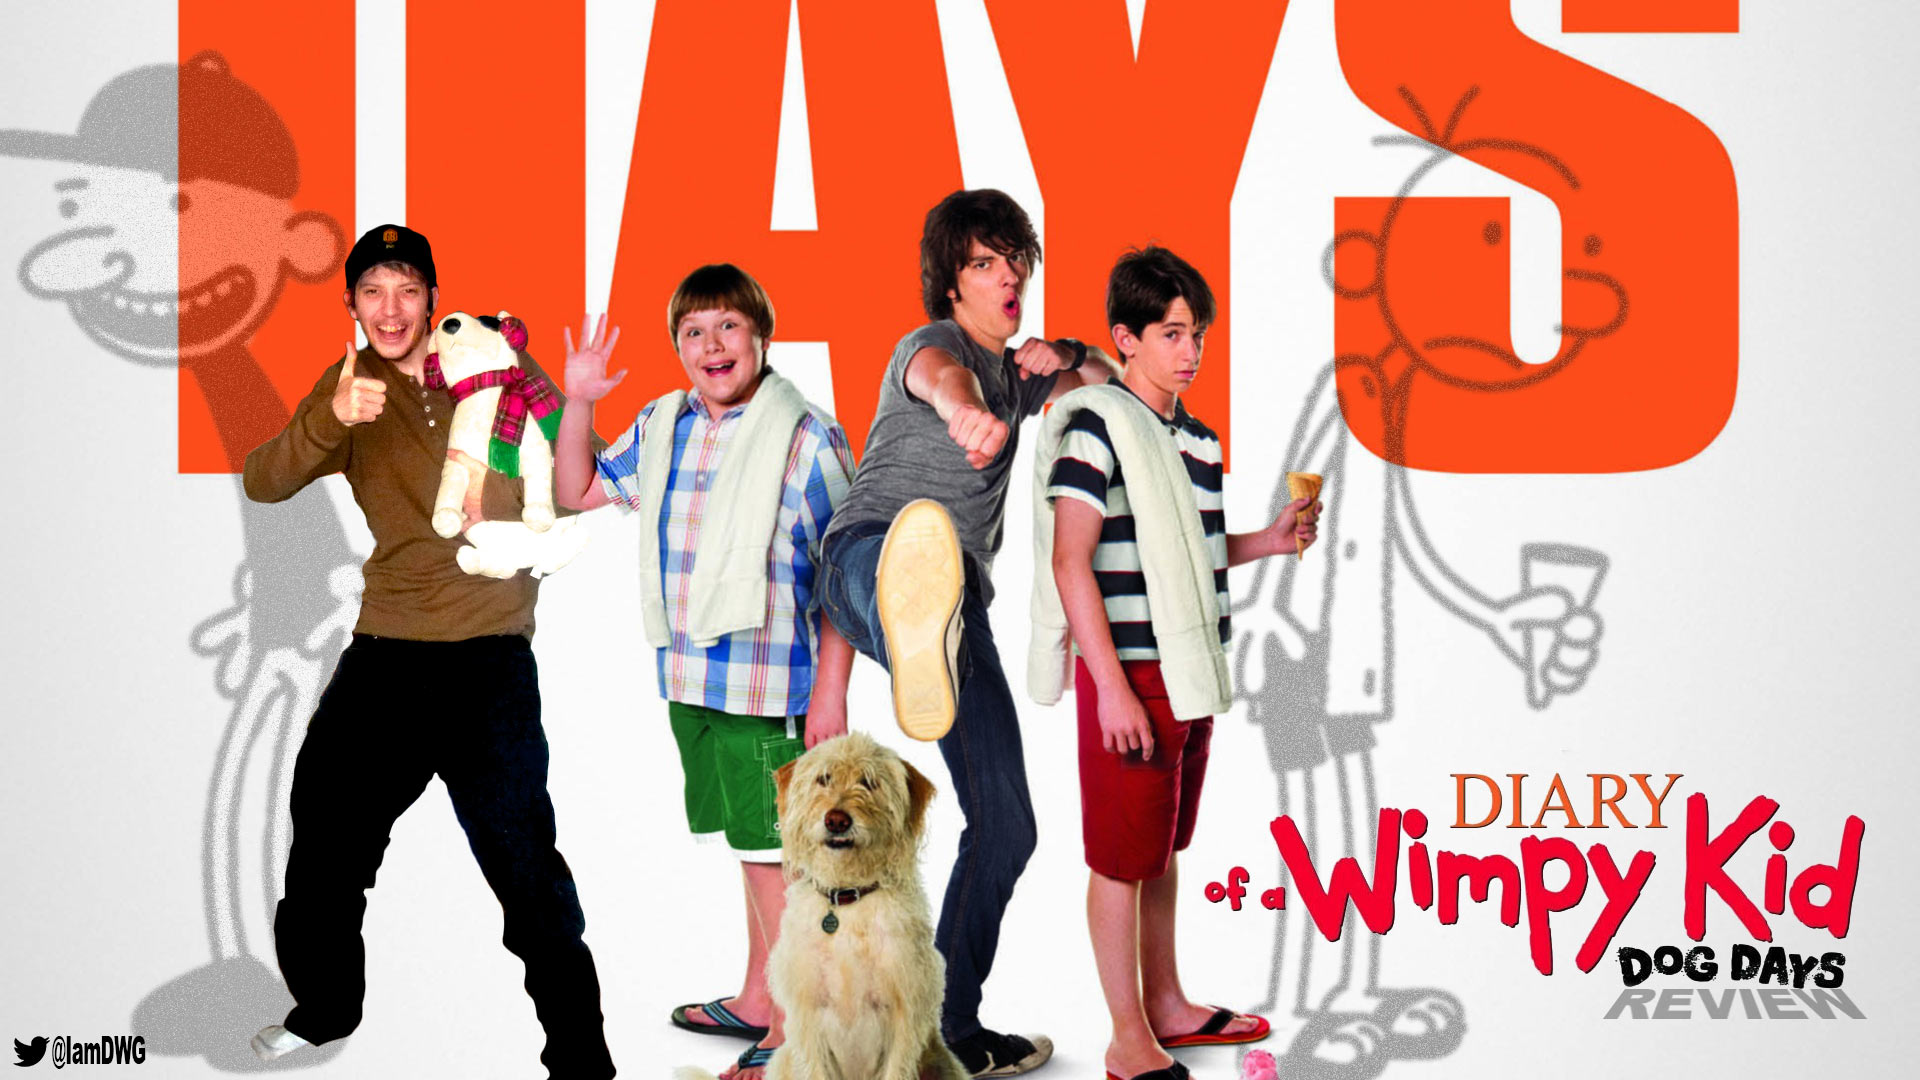 The Diary Of A Wimpy Kid Dog Days Movies